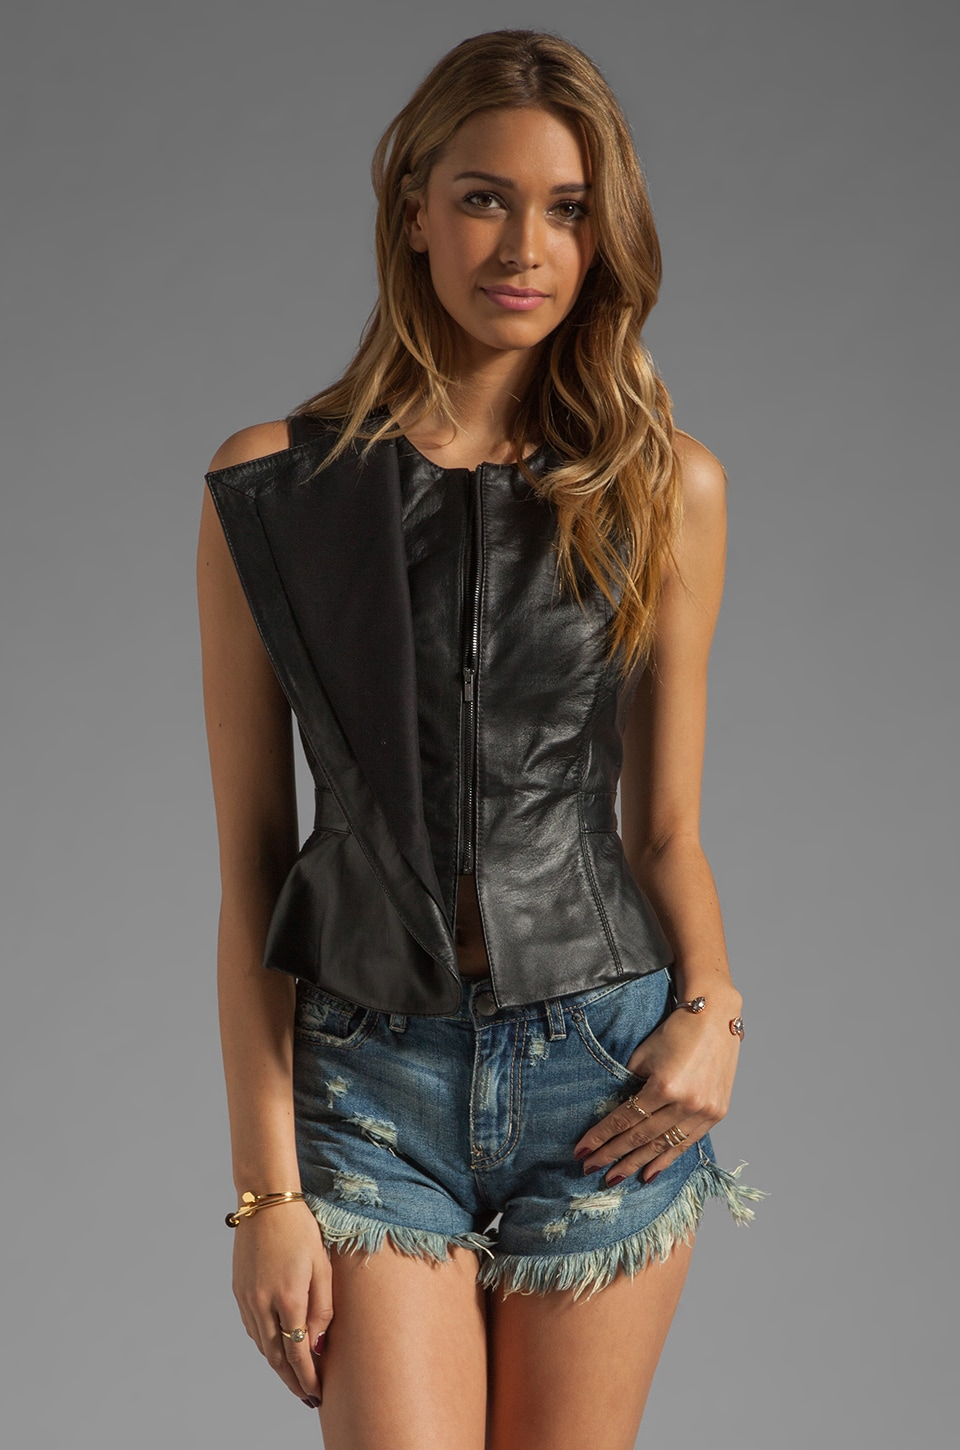 BCBGMAXAZRIA Leather Peplum Top in Black